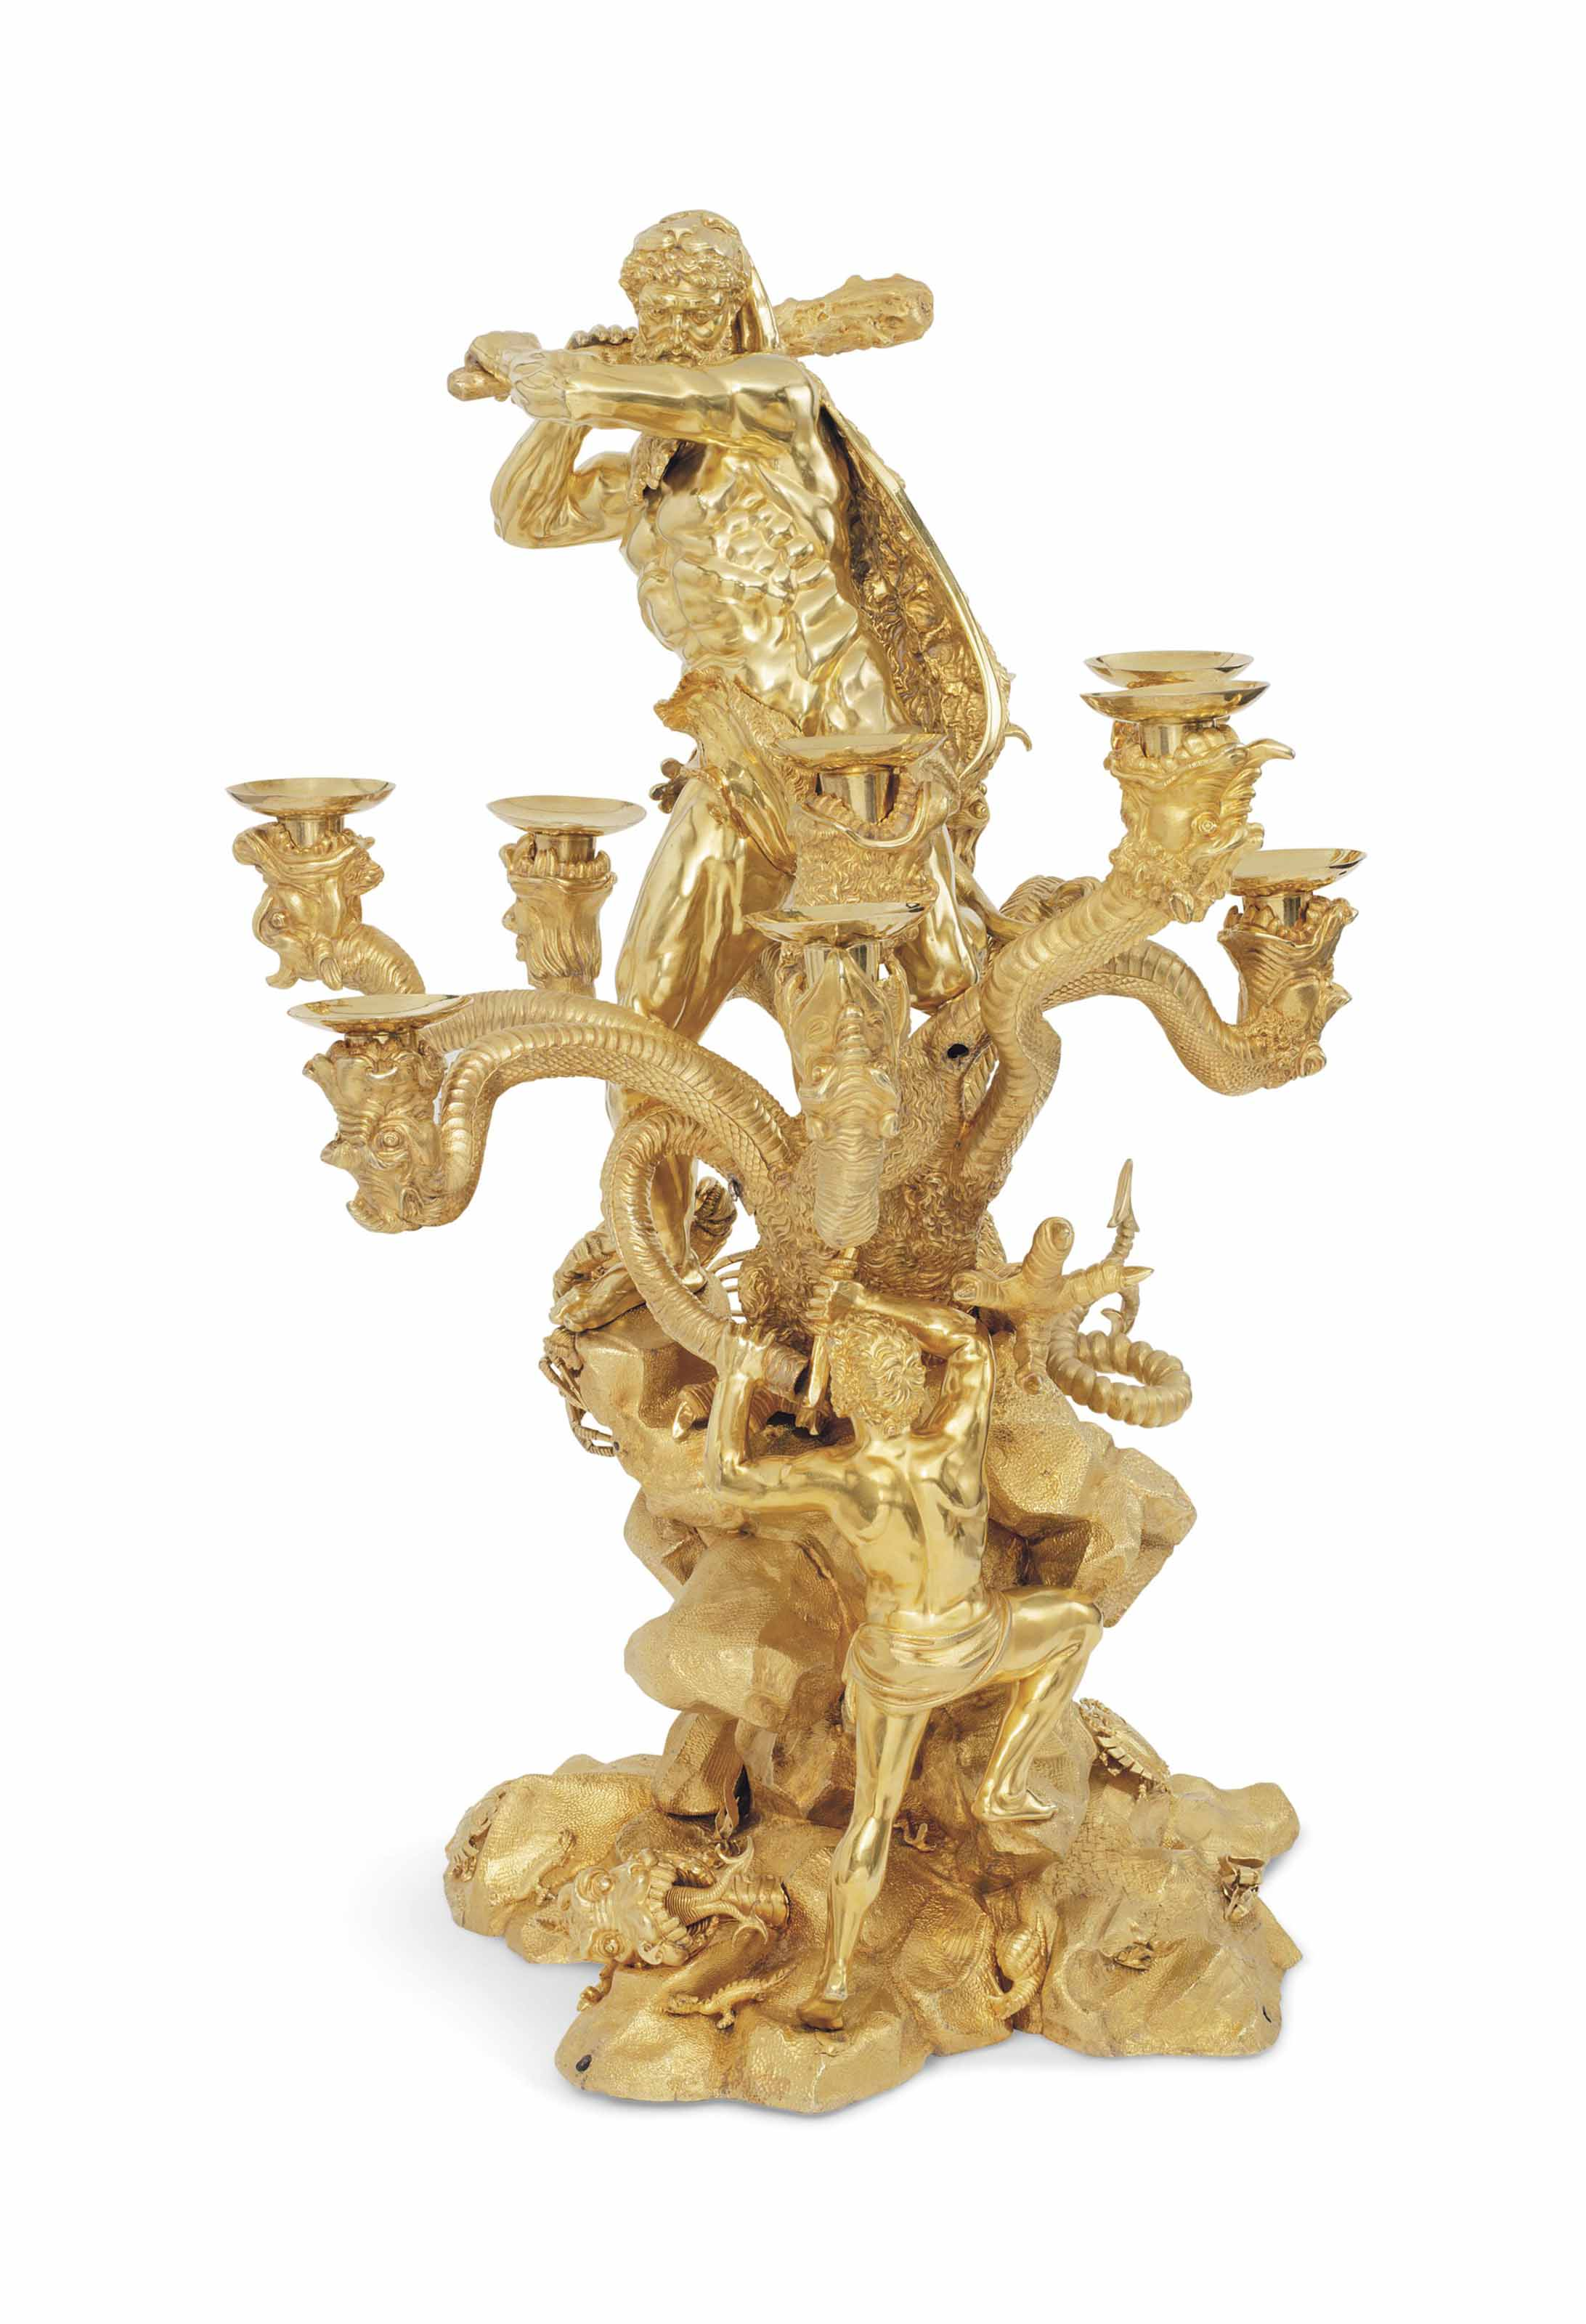 THE DUKE OF YORK CENTREPIECE A MASSIVE GEORGE IV SILVER-GILT NINE-LIGHT CANDELABRUM CENTREPIECE